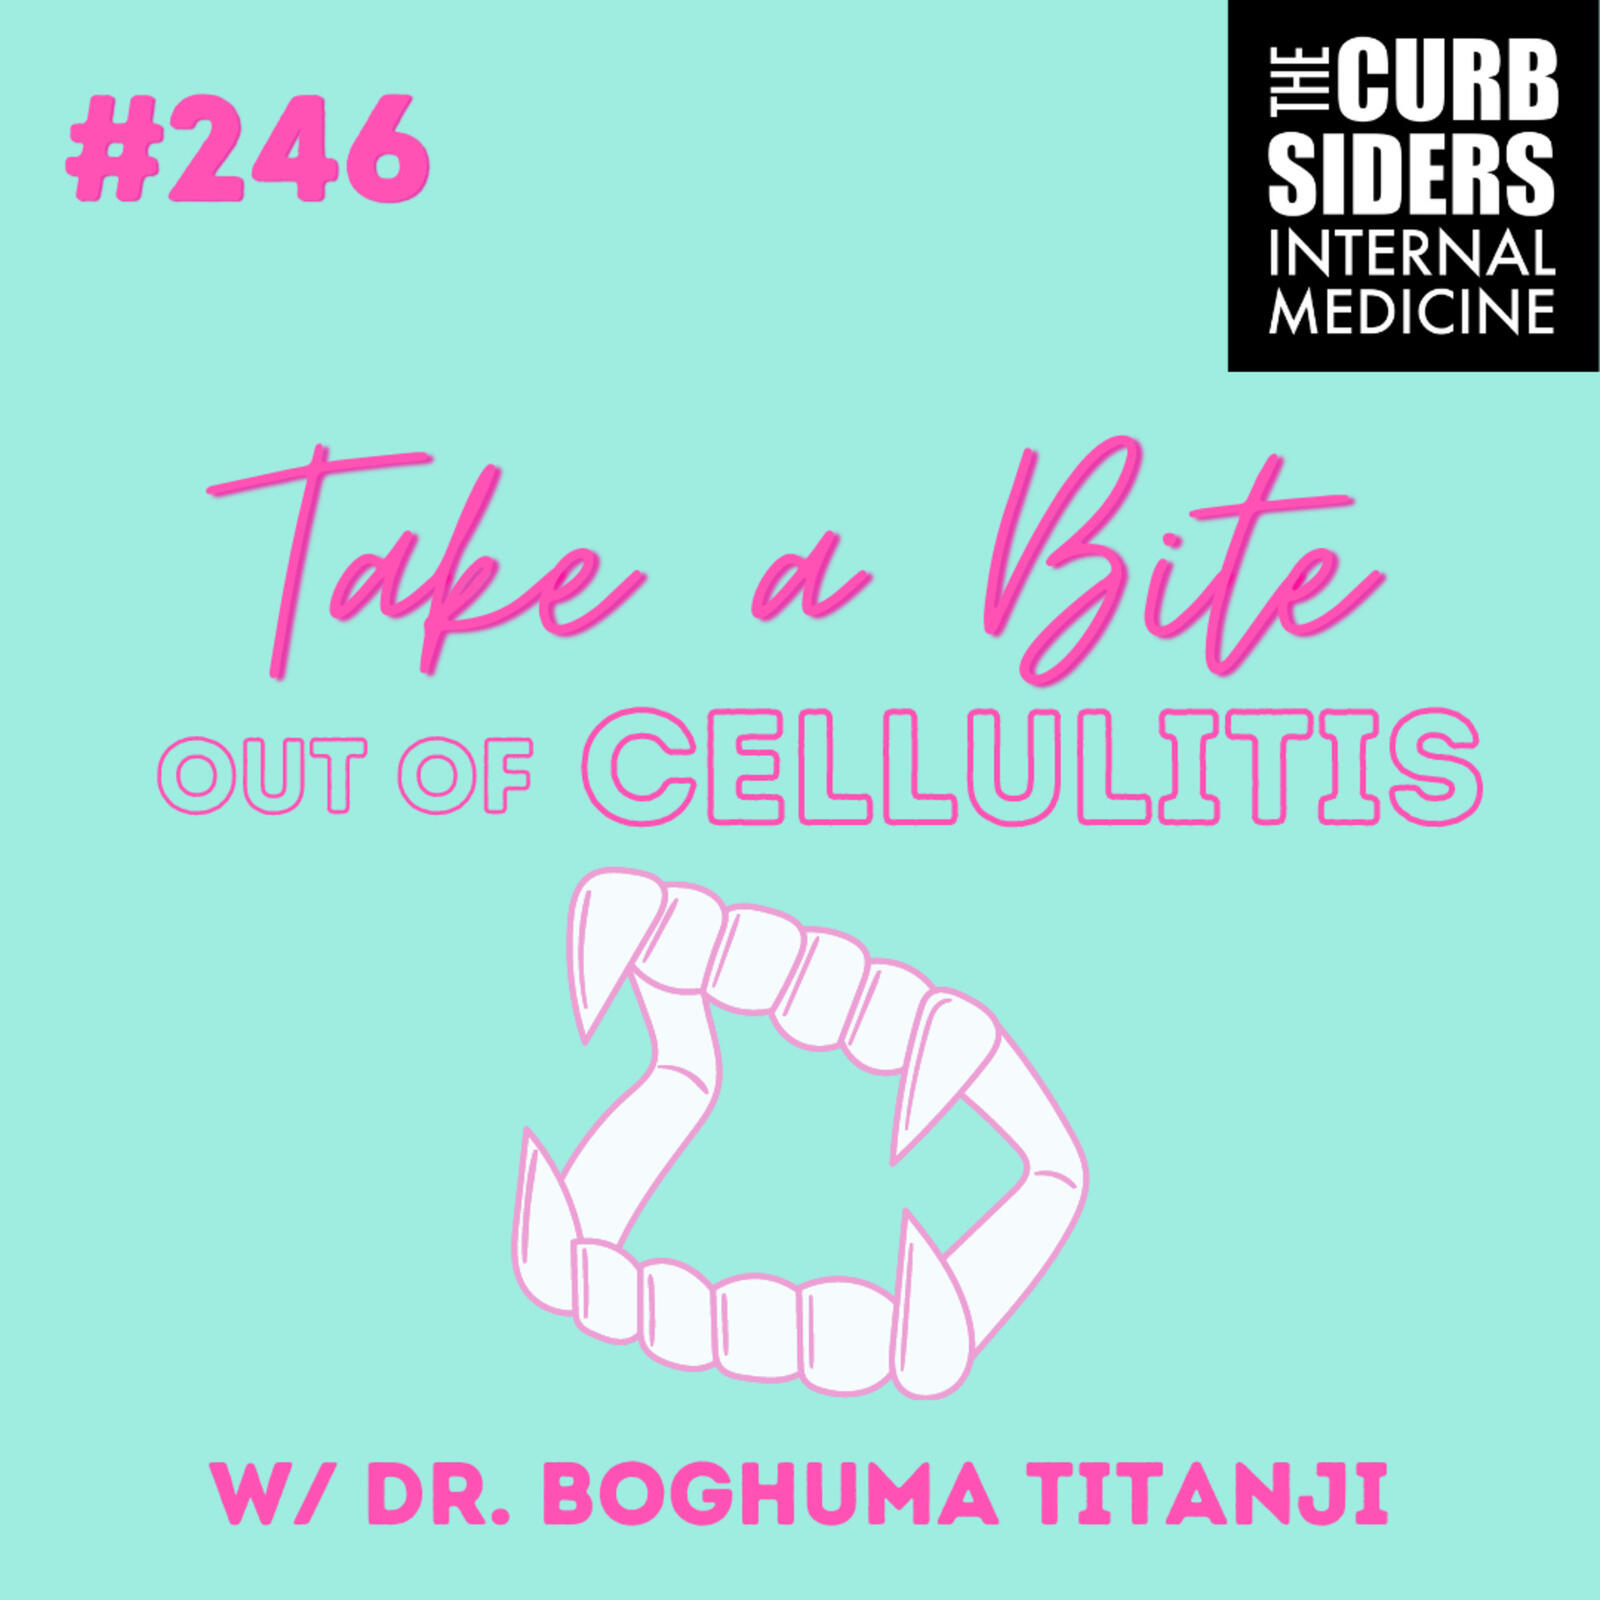 #246 Take a Bite out of Cellulitis with Dr Boghuma Titanji